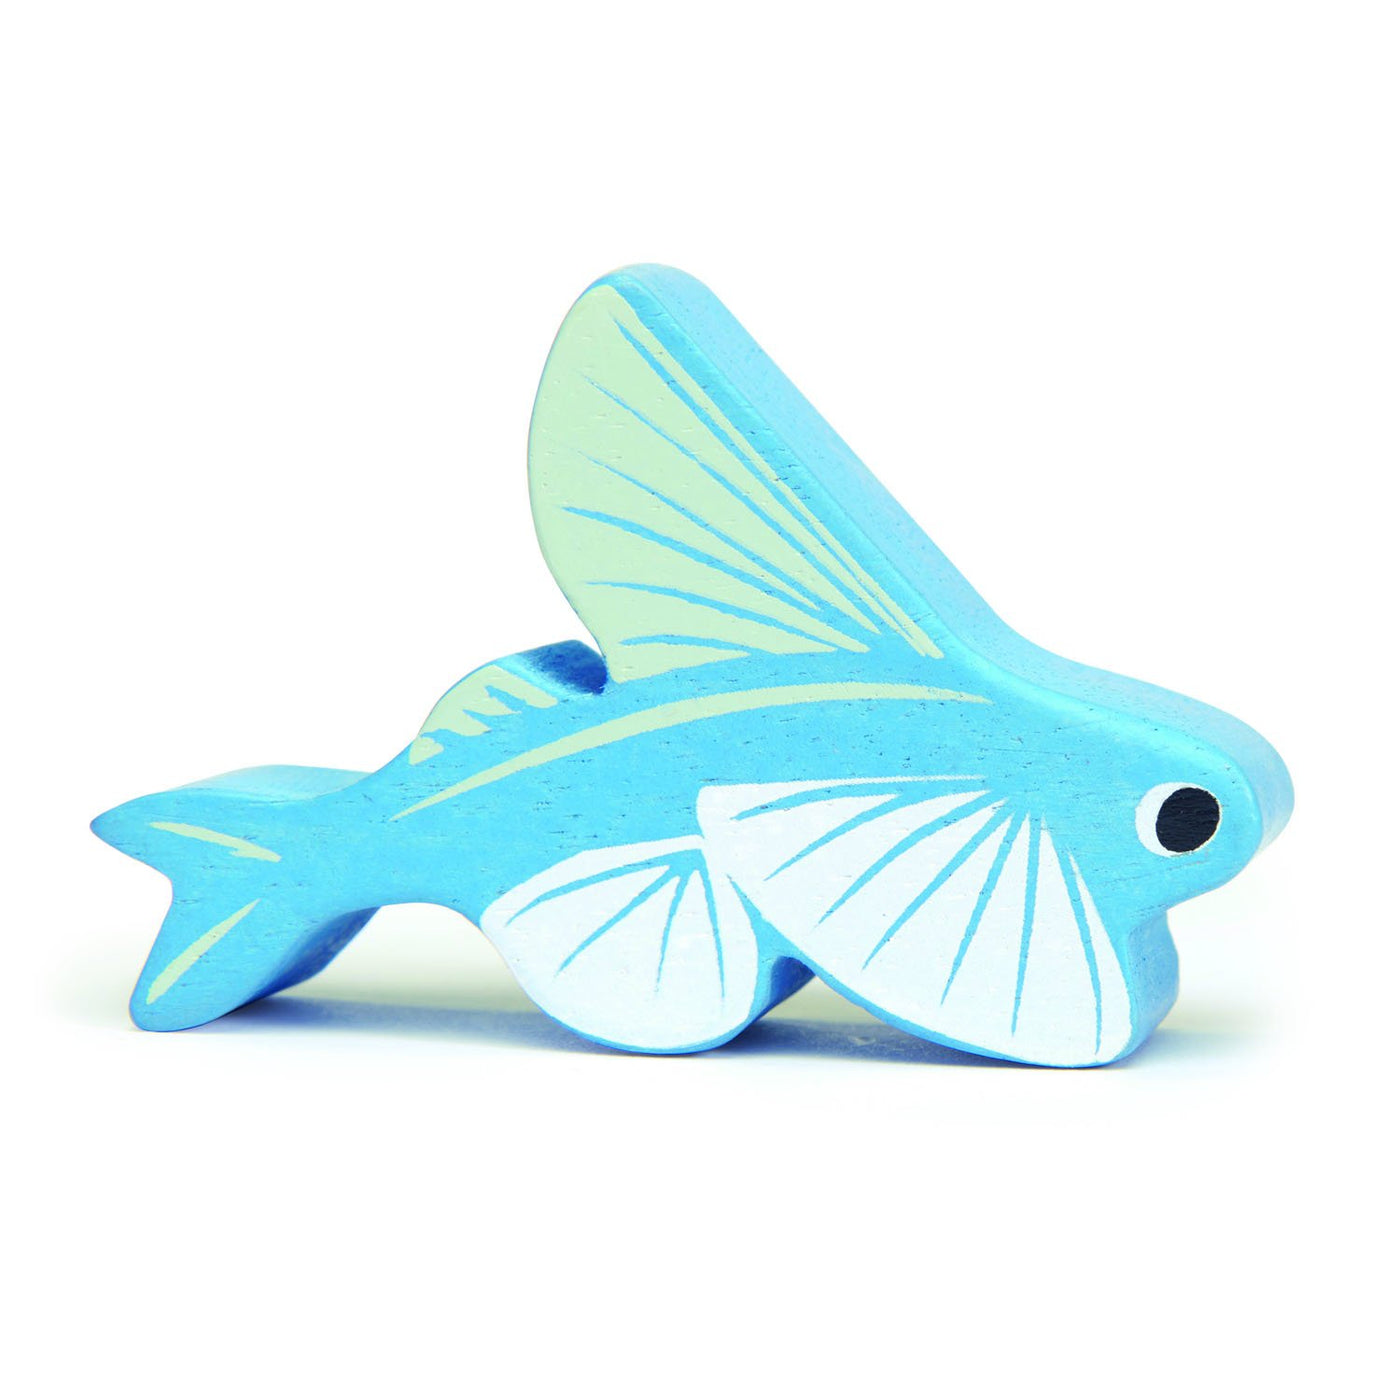 Tender Leaf - Coastal Creatures - Flying Fish - Two Little Birds Boutique